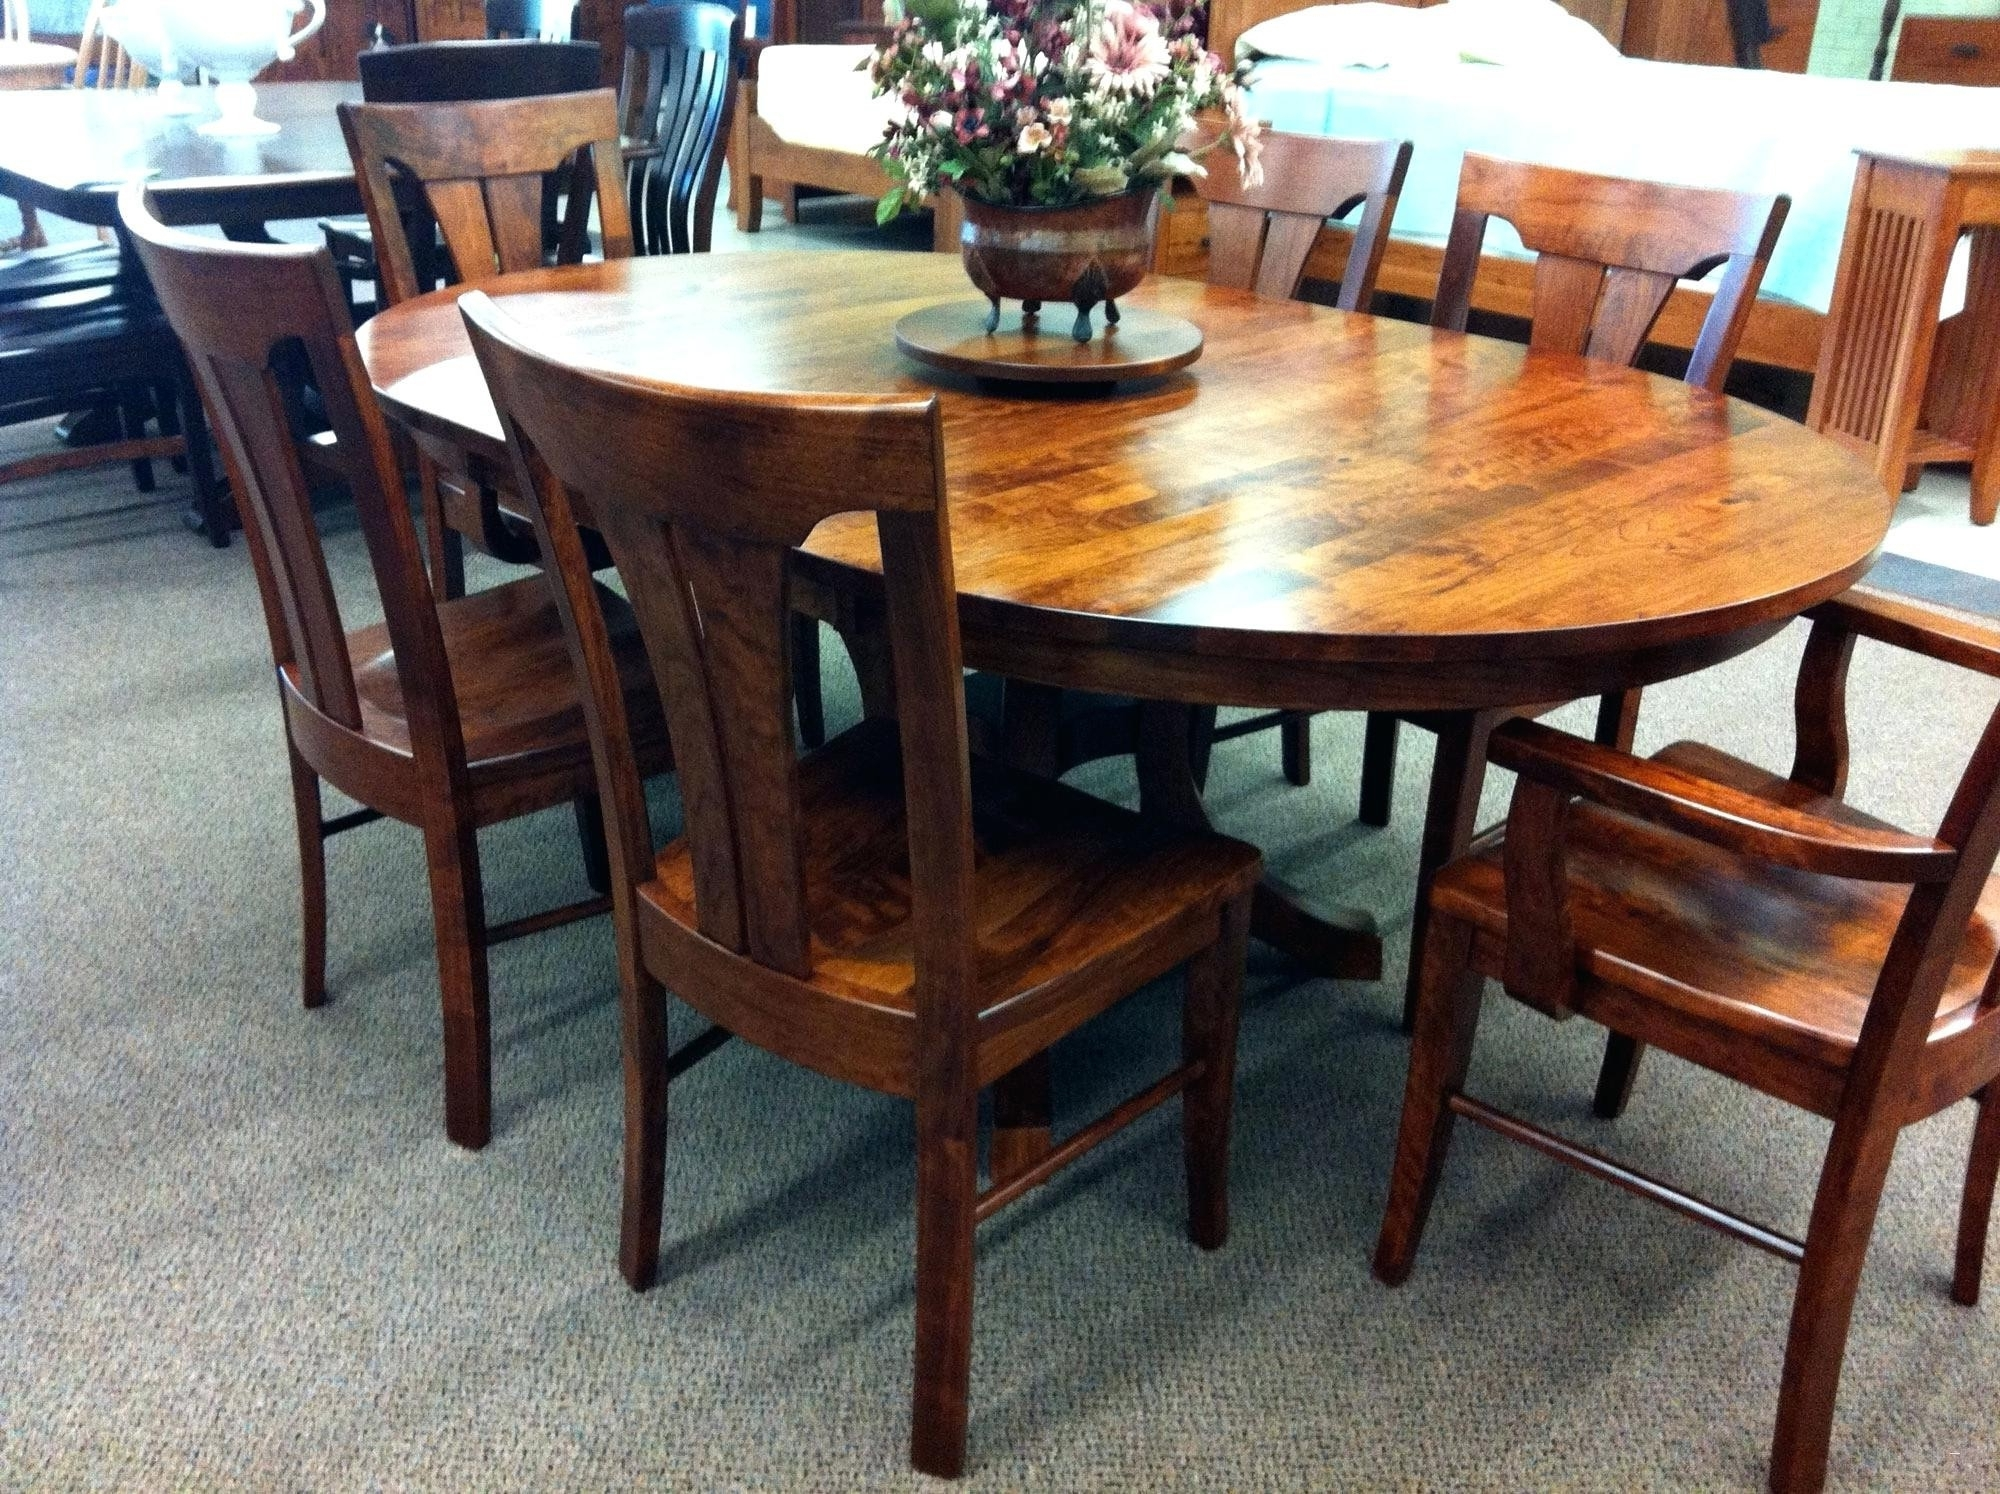 The 24 Elegant Solid Oak Round Dining Table 6 Chairs Within Well Liked Wood Dining Tables And 6 Chairs (View 17 of 25)